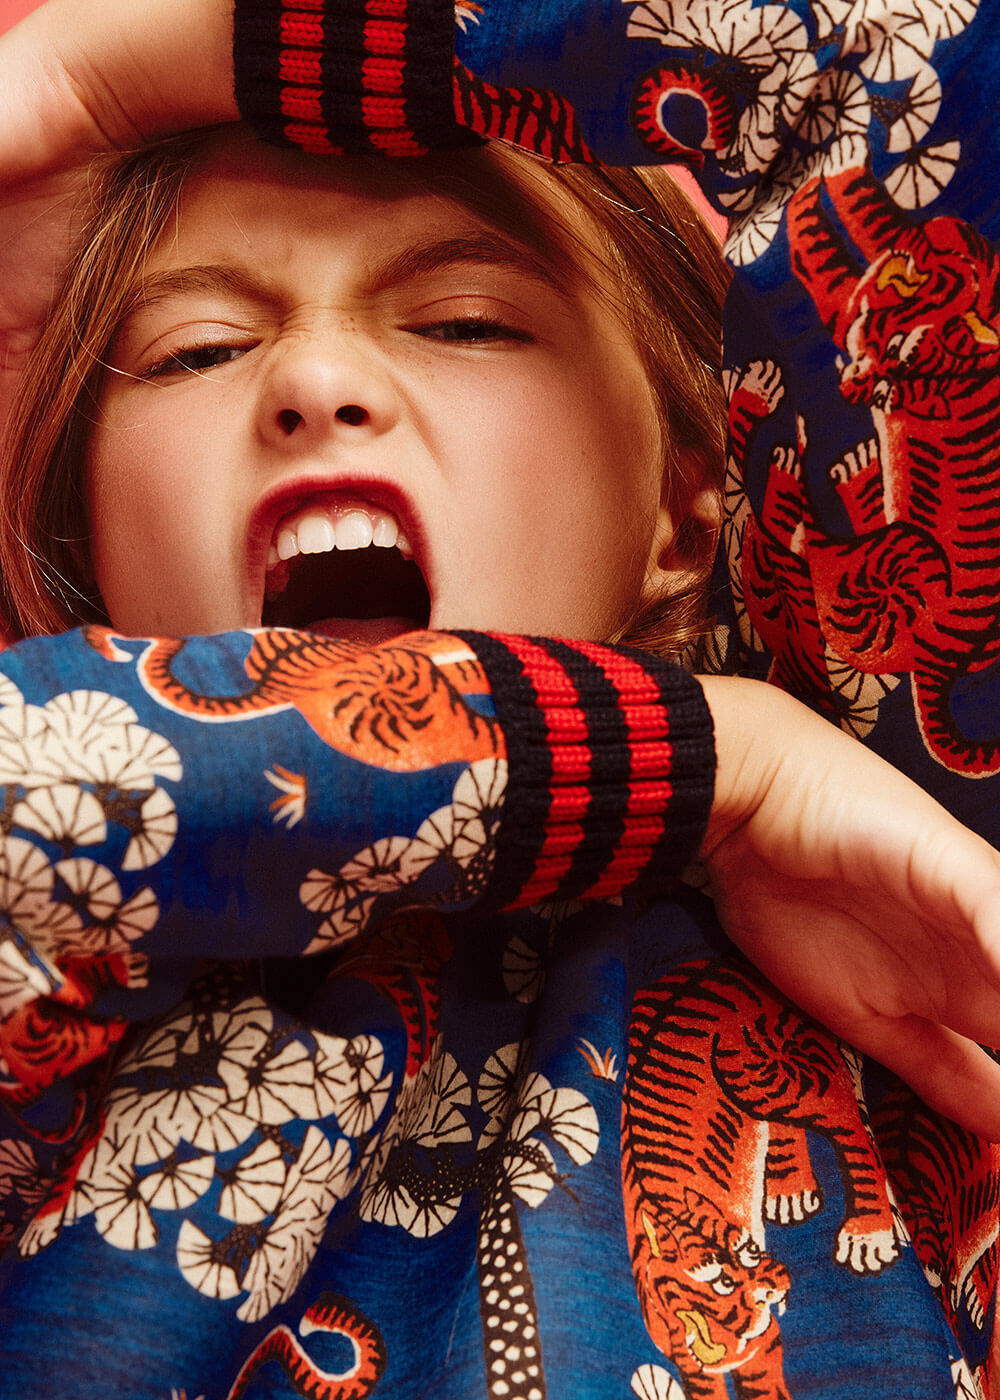 Kids fashion Photography | Tiger | VIKA POBEDA